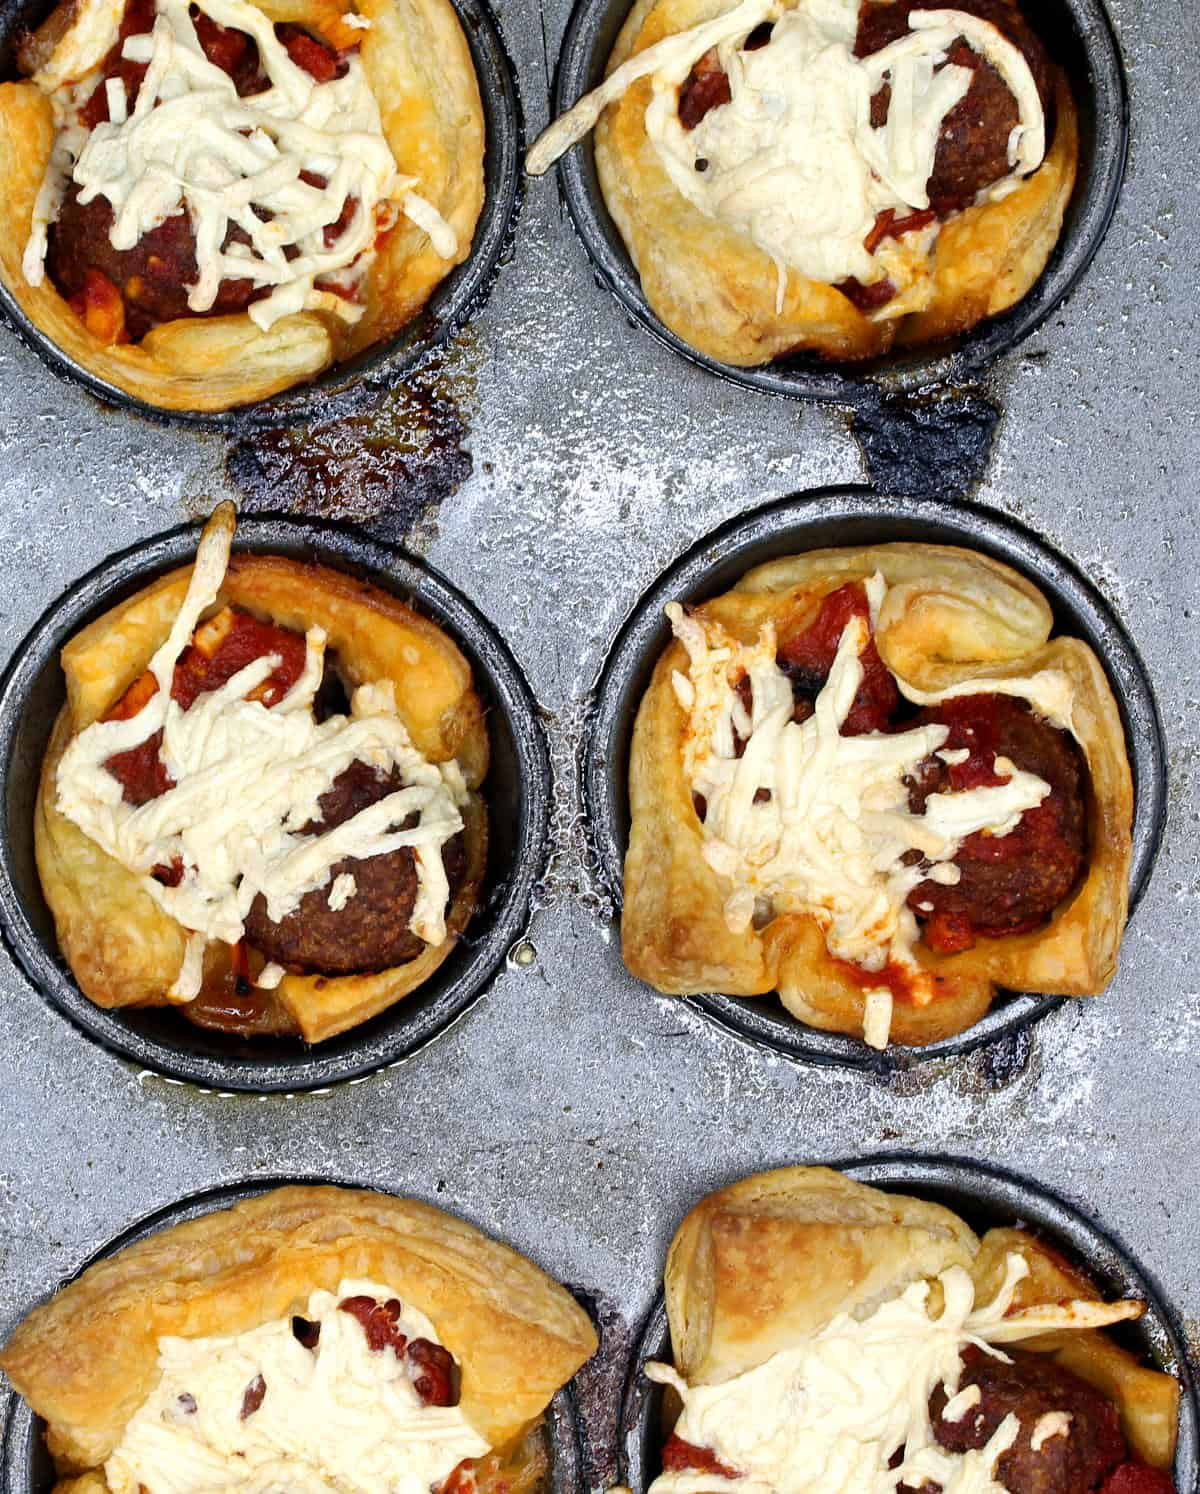 Vegan puff pastry cups with meatballs and marinara sauce and cheese in a muffin tin.